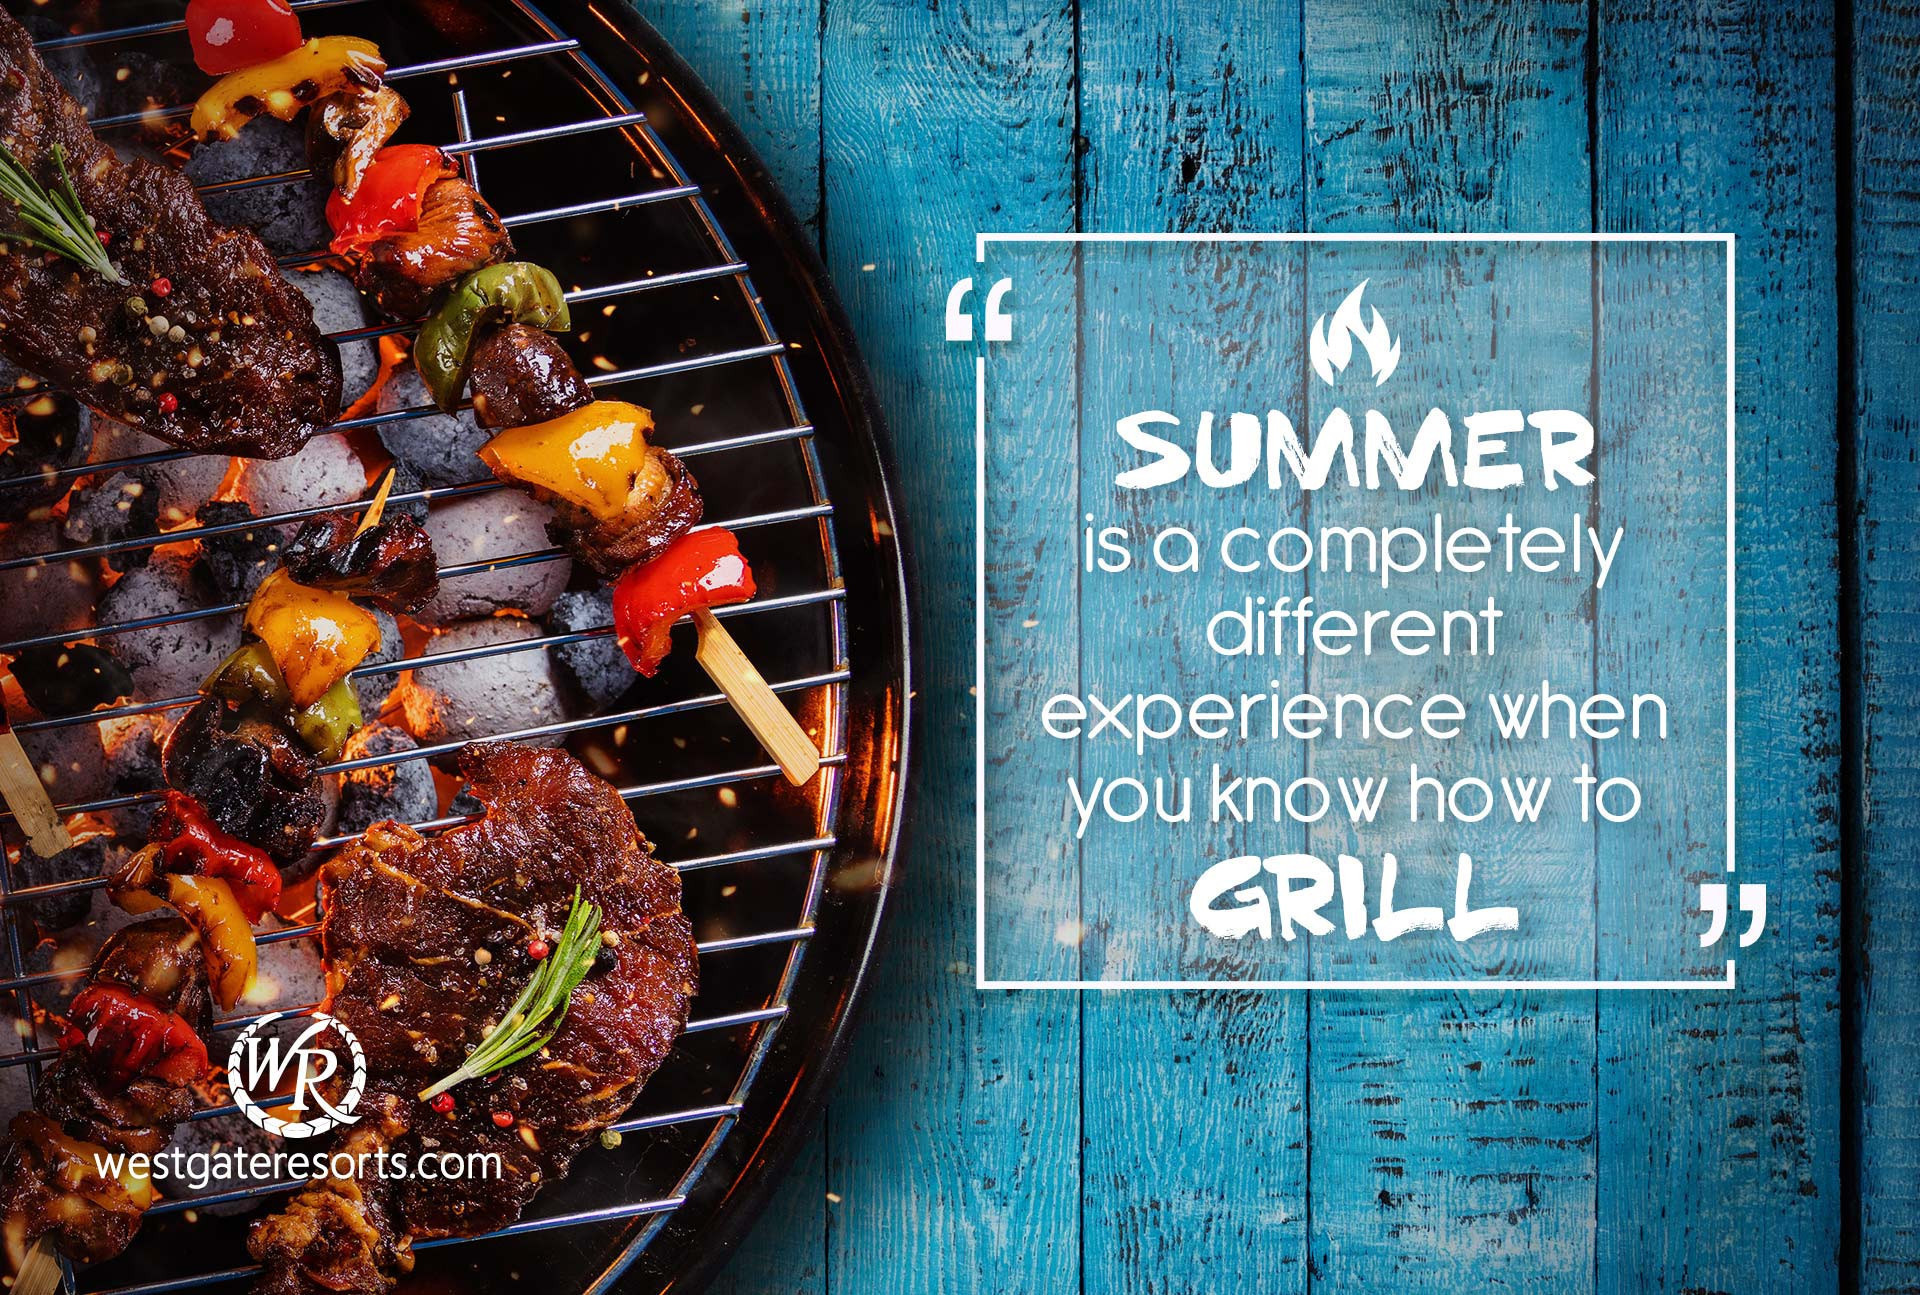 Summer is a completely different experience when you know how to grill | Quotes About Summer | Westgate Resorts